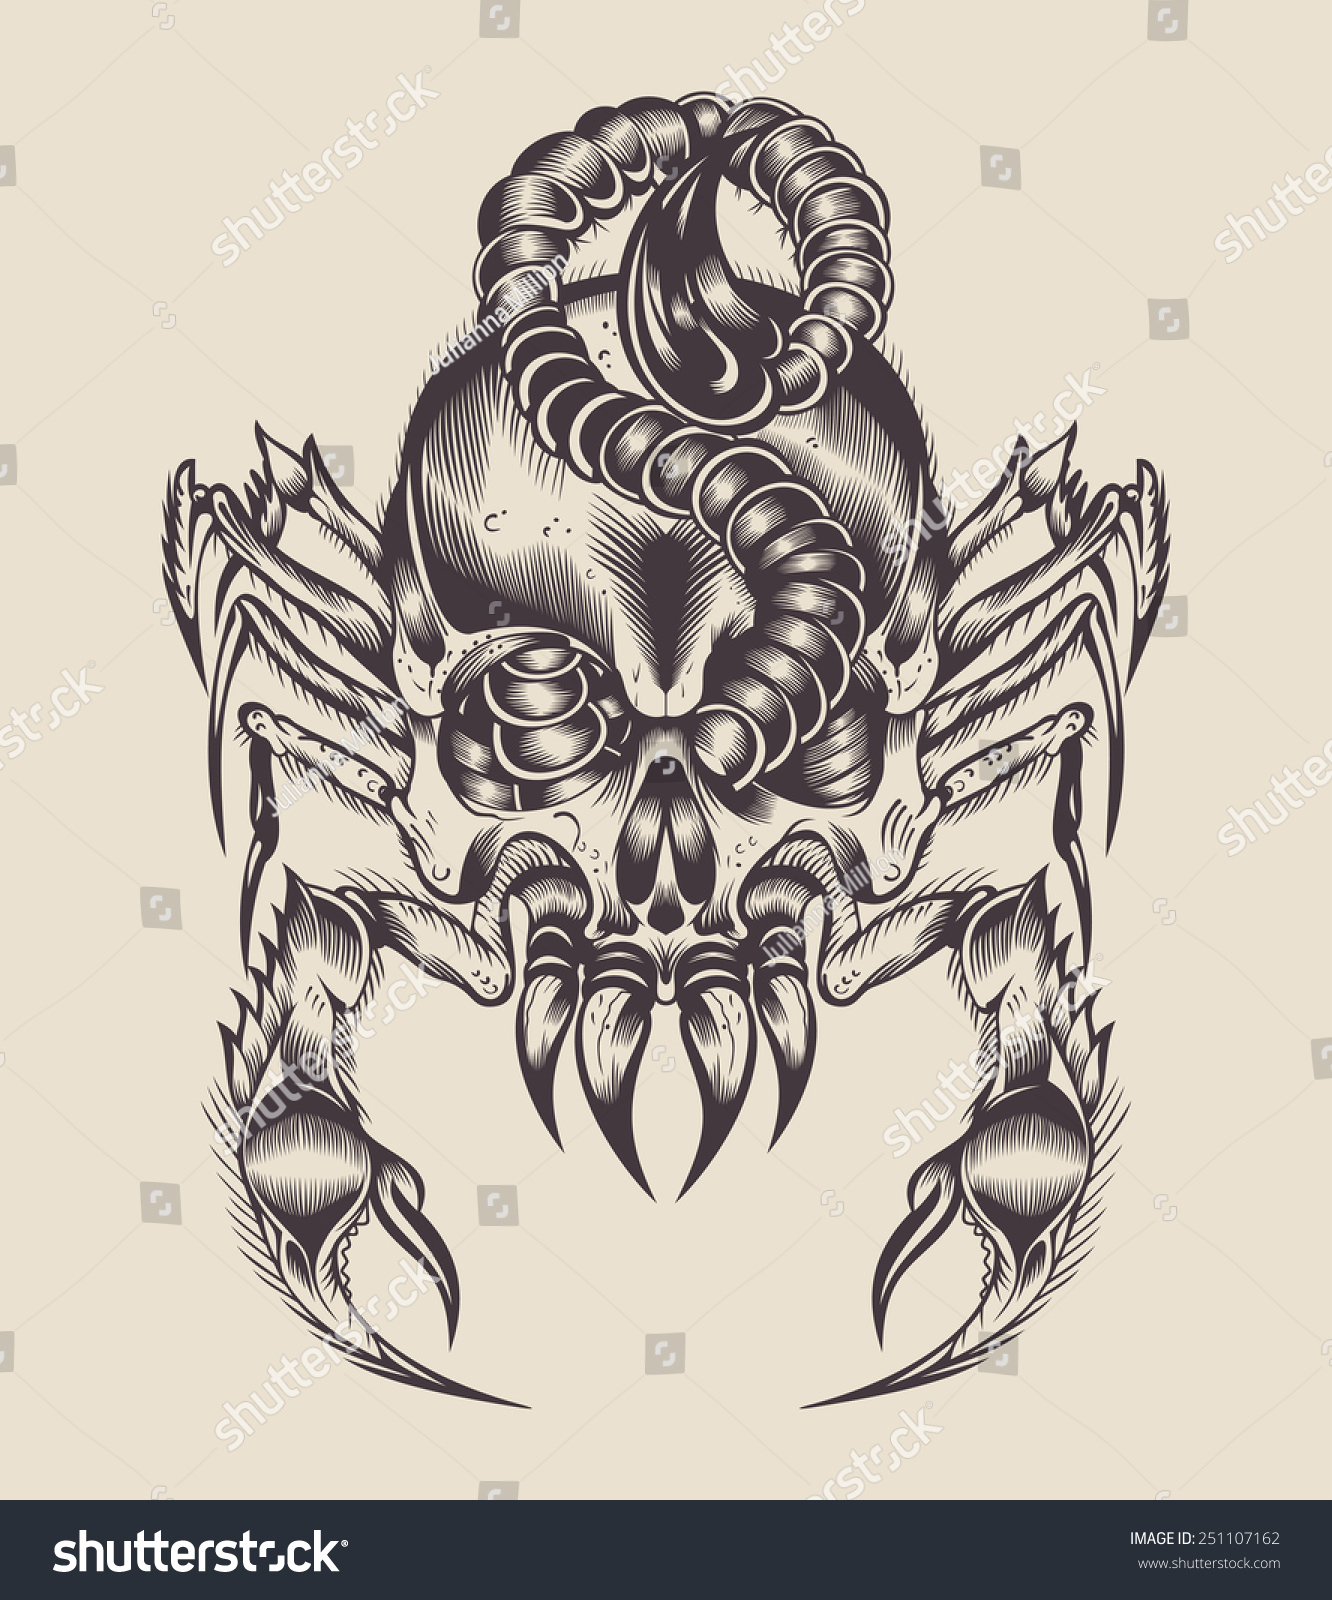 Illustration Monster Scorpion Skull Stock Vector 251107162